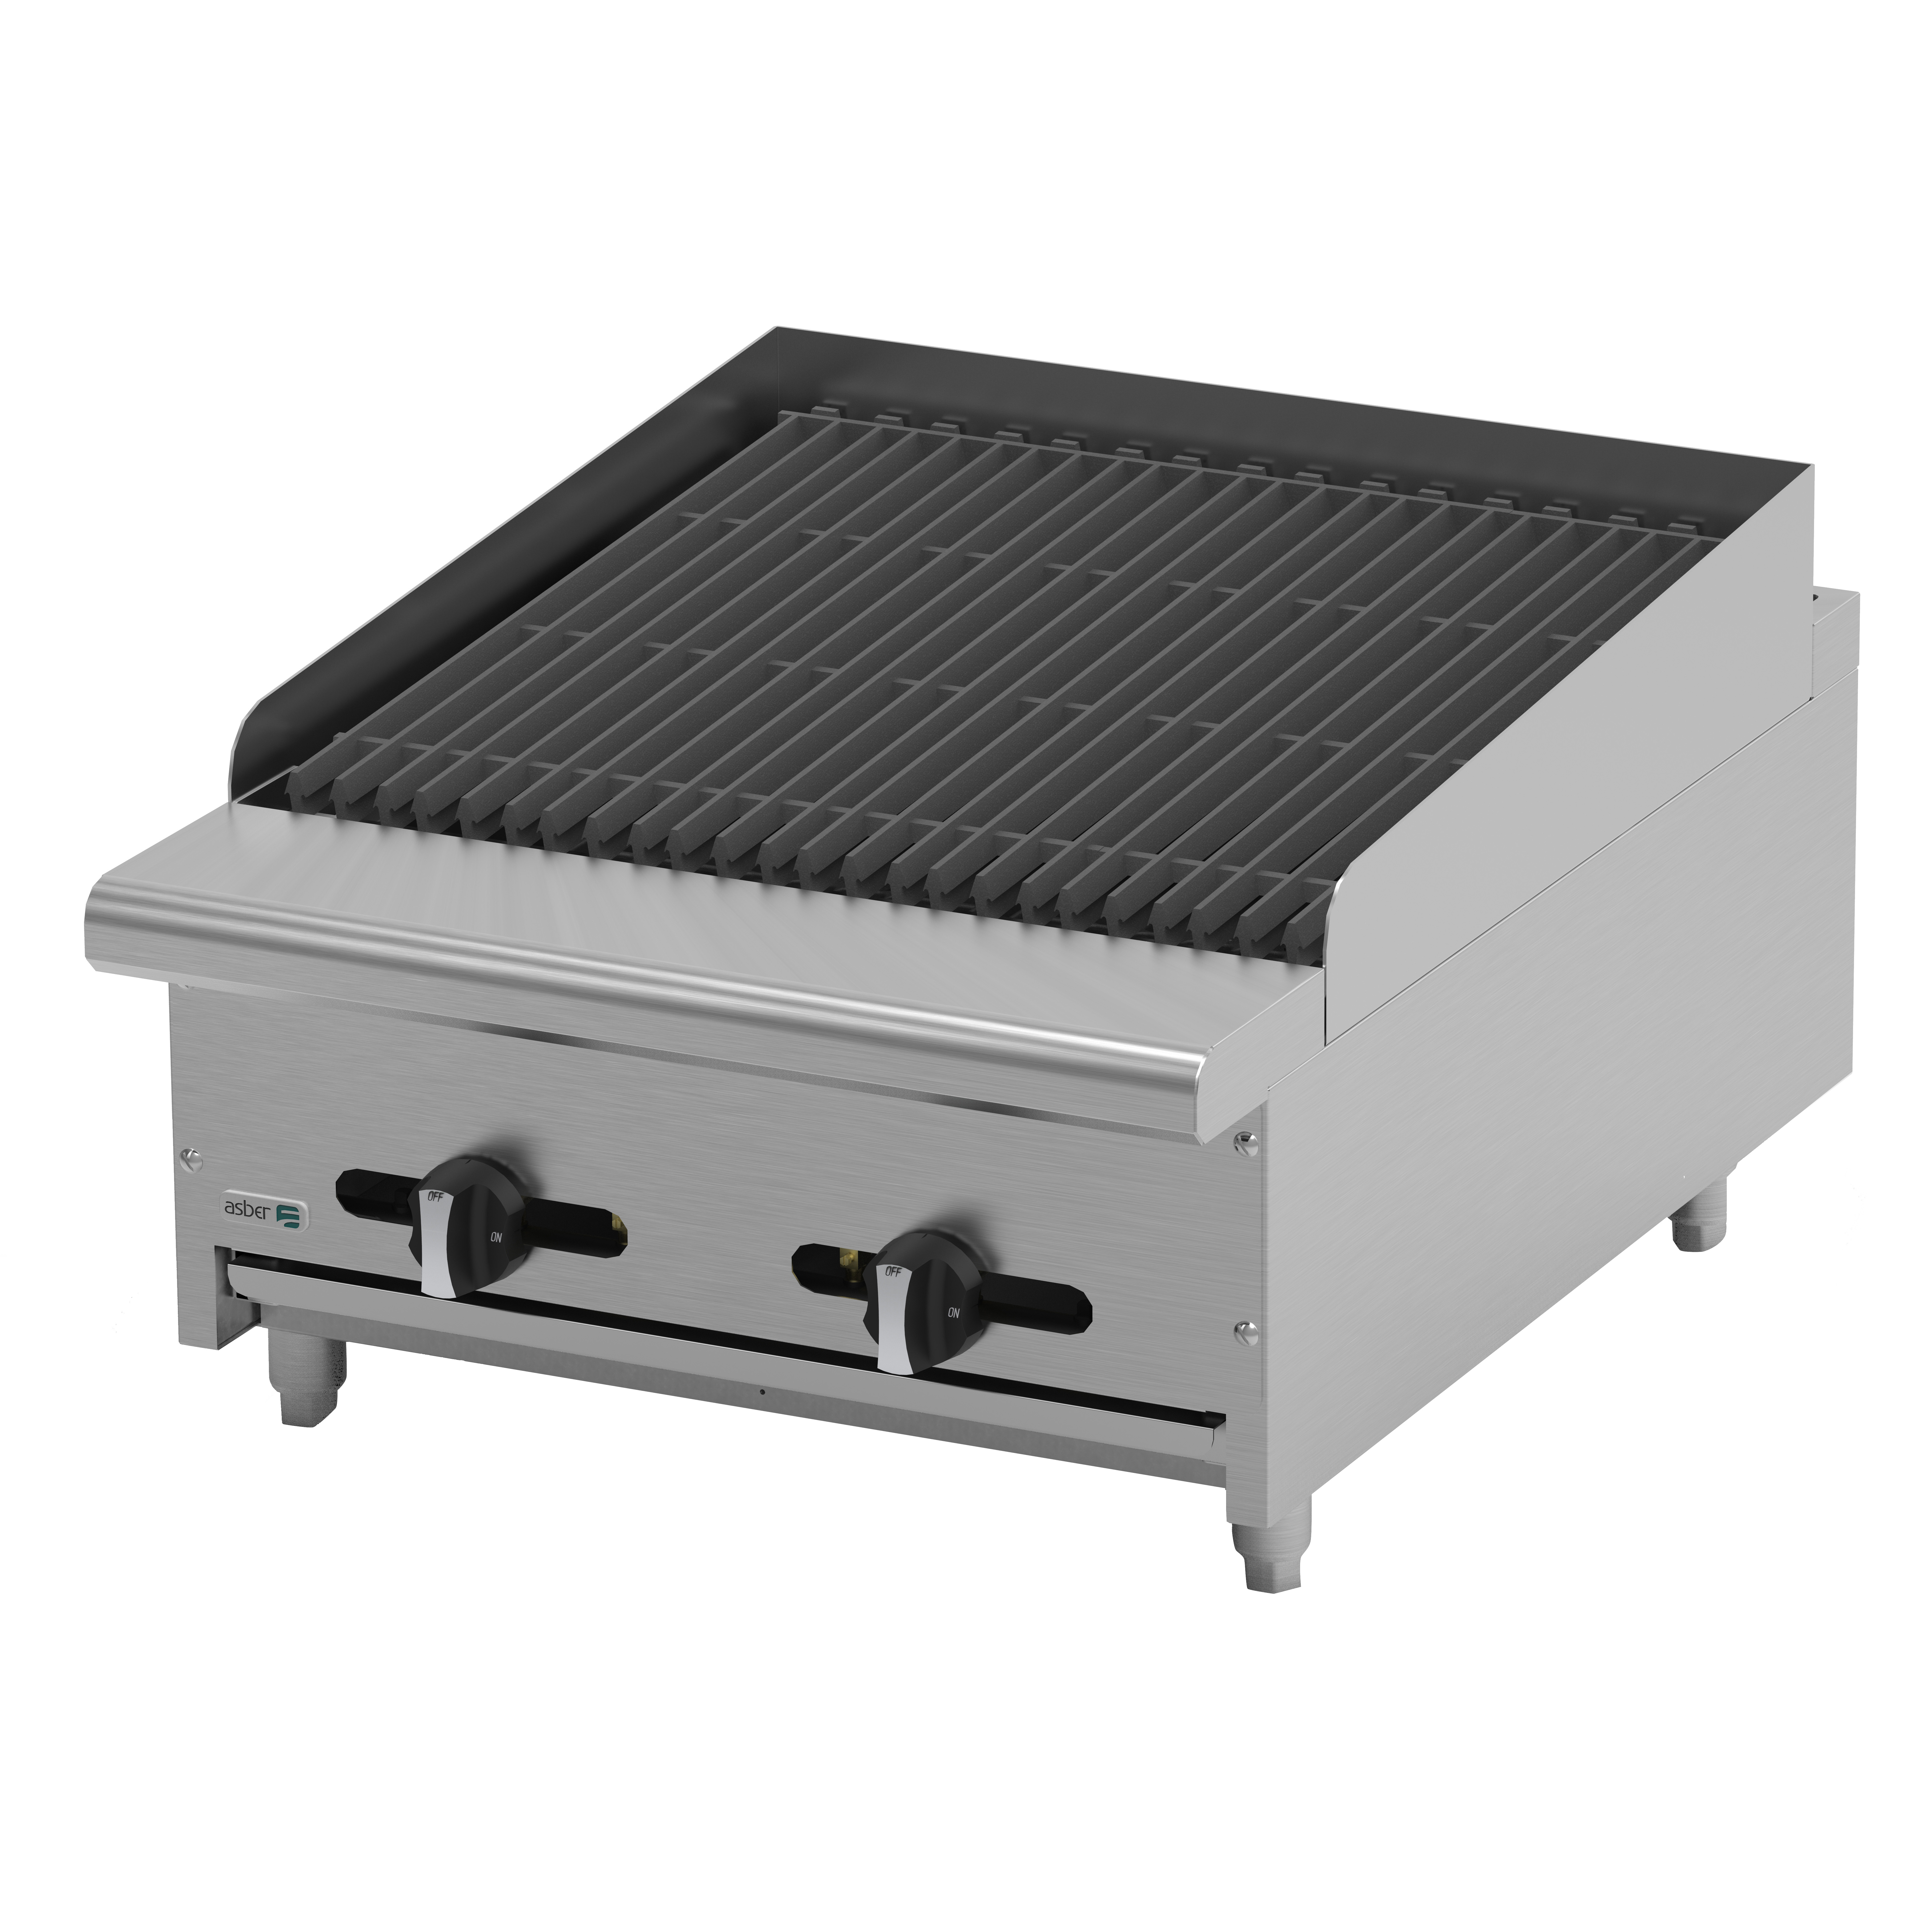 Asber AECRB-24 charbroiler, gas, countertop